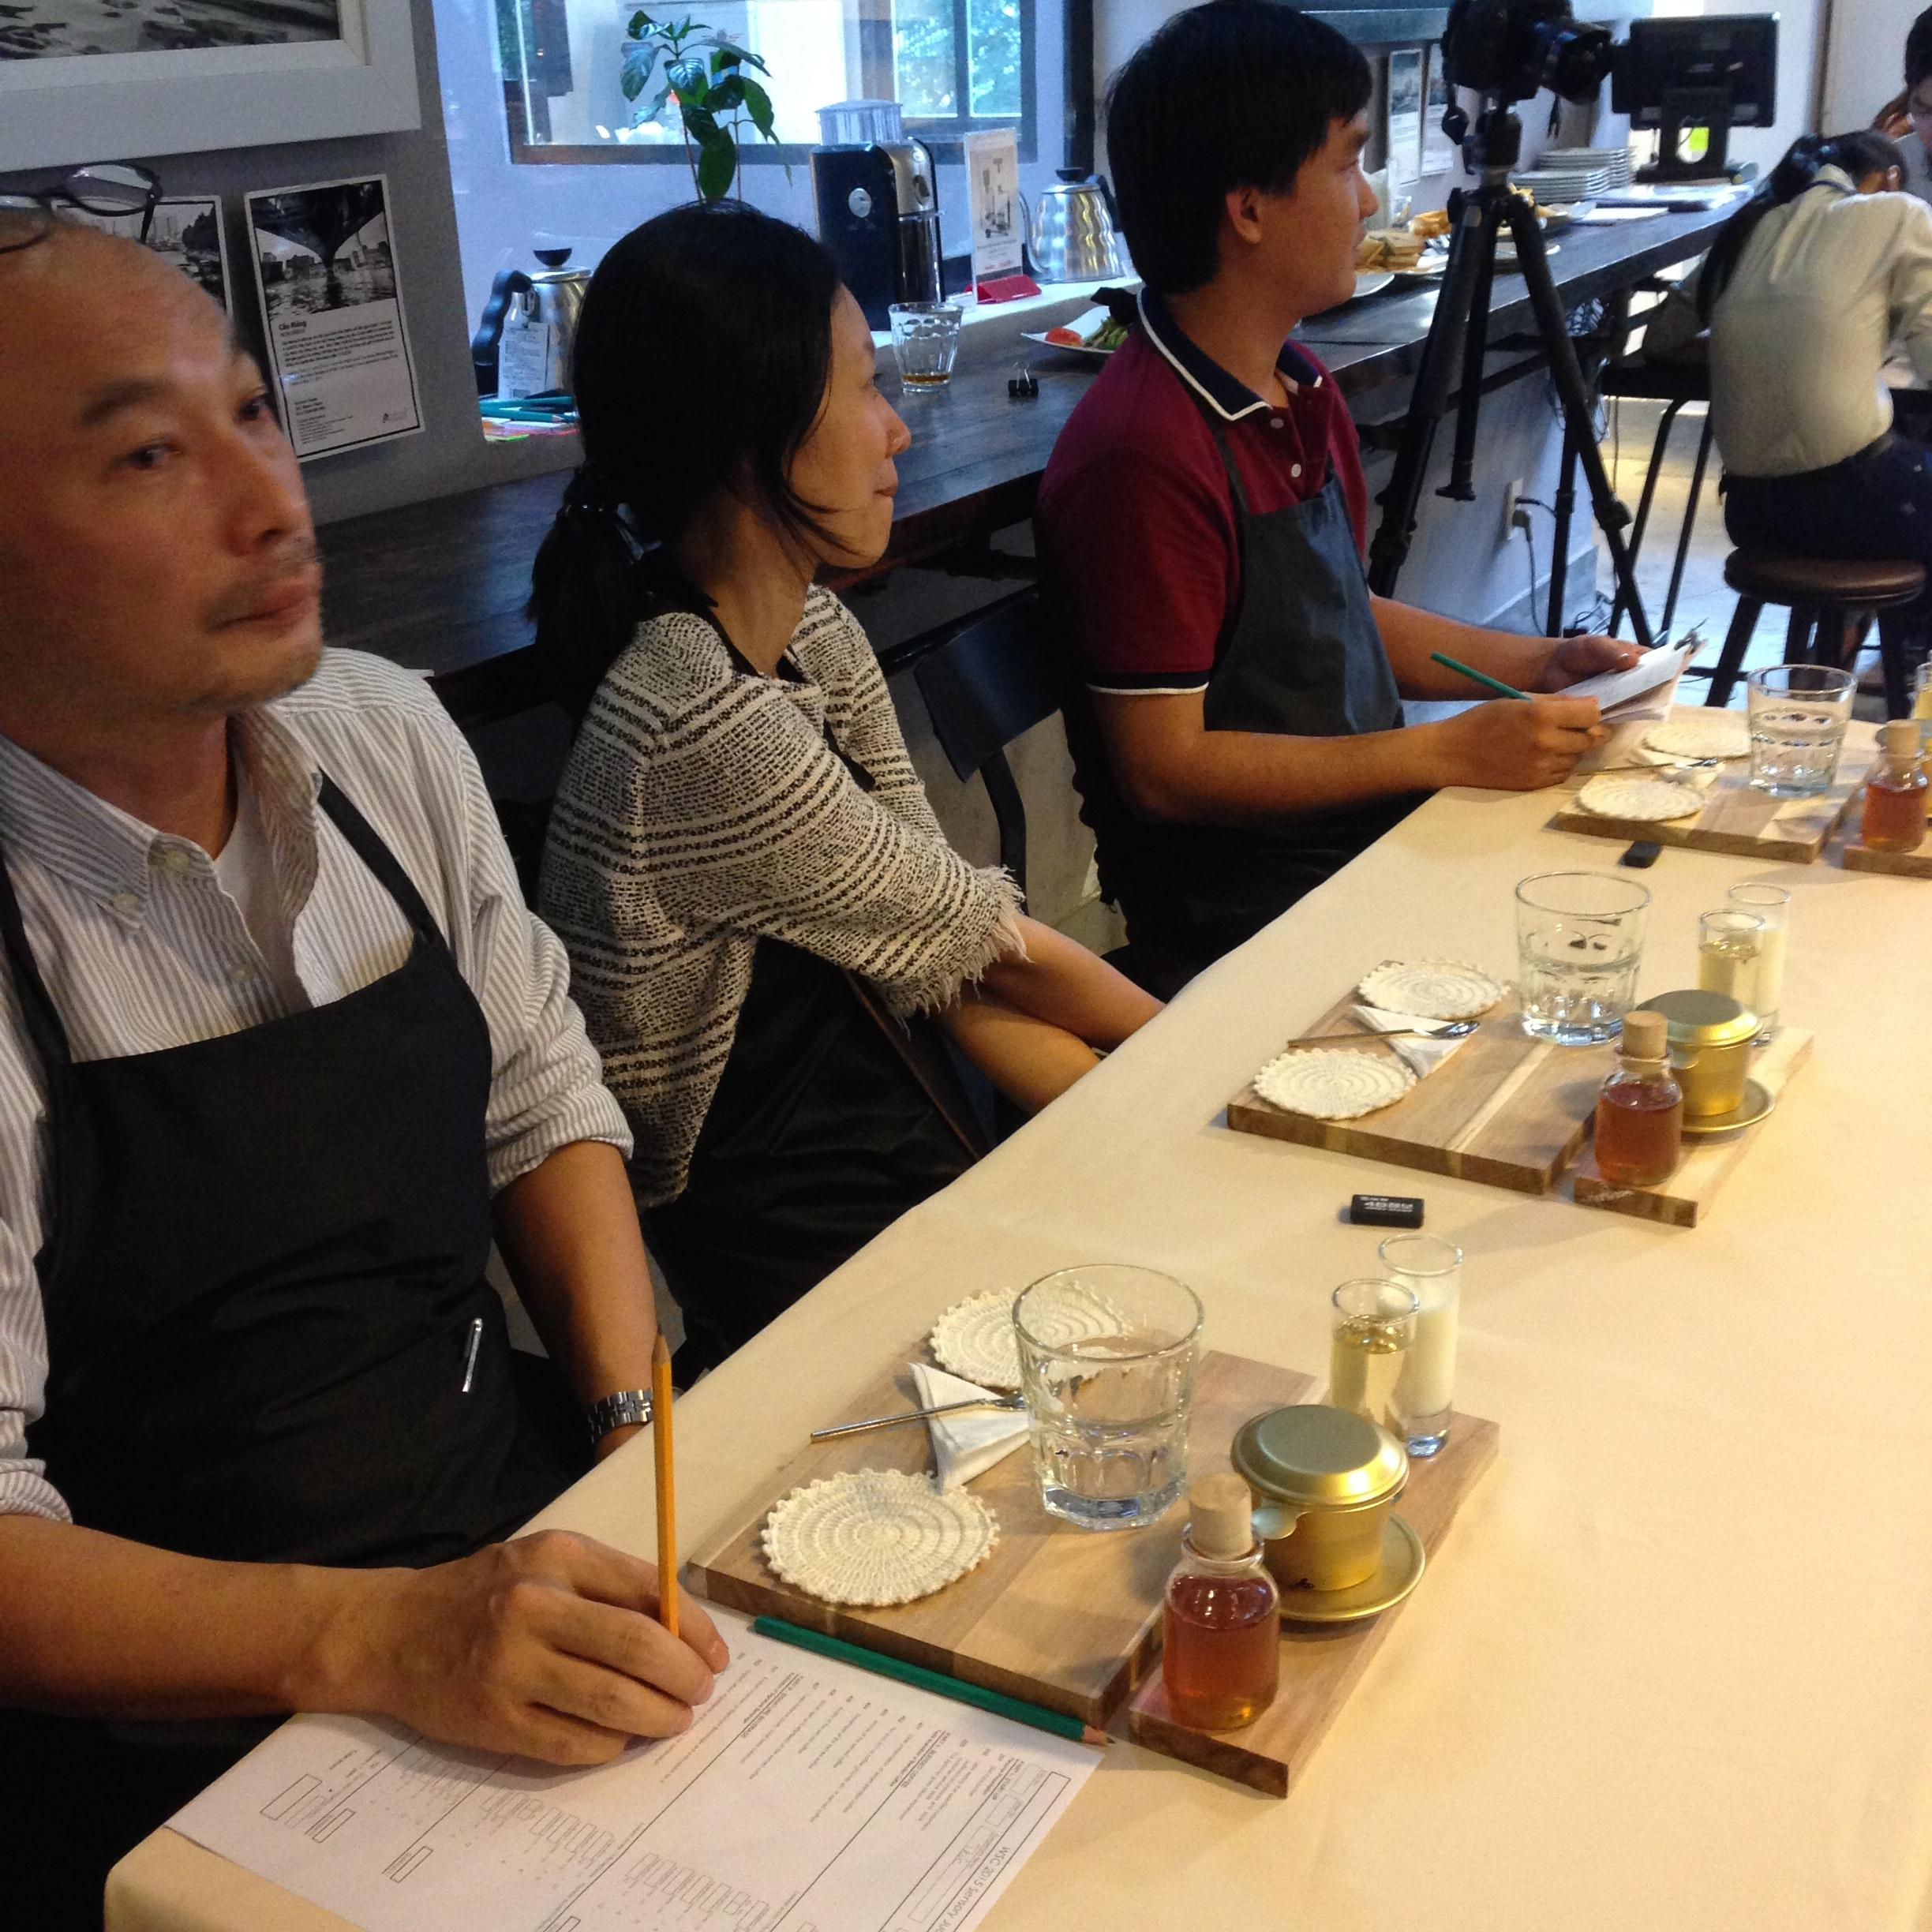 Sensory Judges (Baba, Tiep, and Chau) are ready for the next competitor